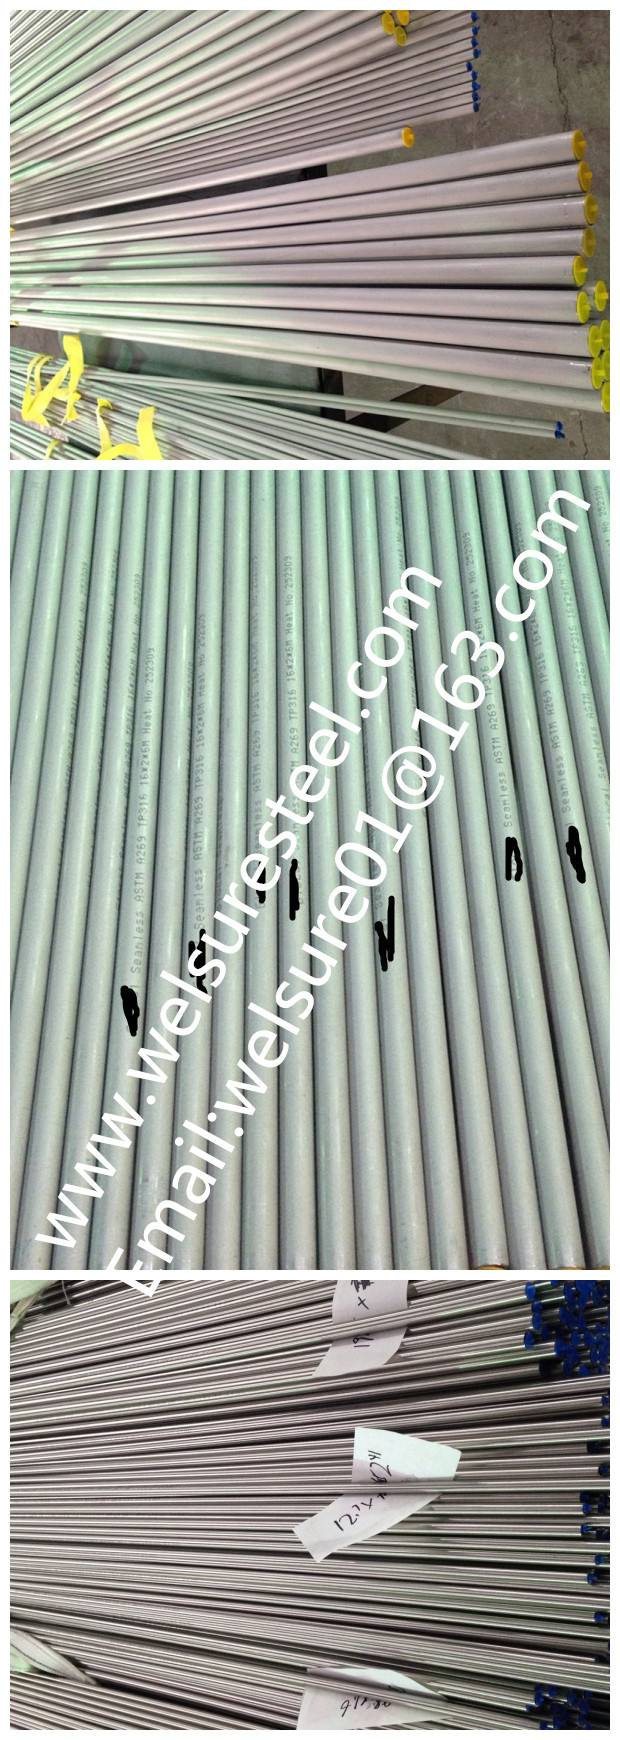 Product Description  1. NAME: Stainless Steel/Duplex Stainless Steel Pipe  2. MATERIAL: Stainless St